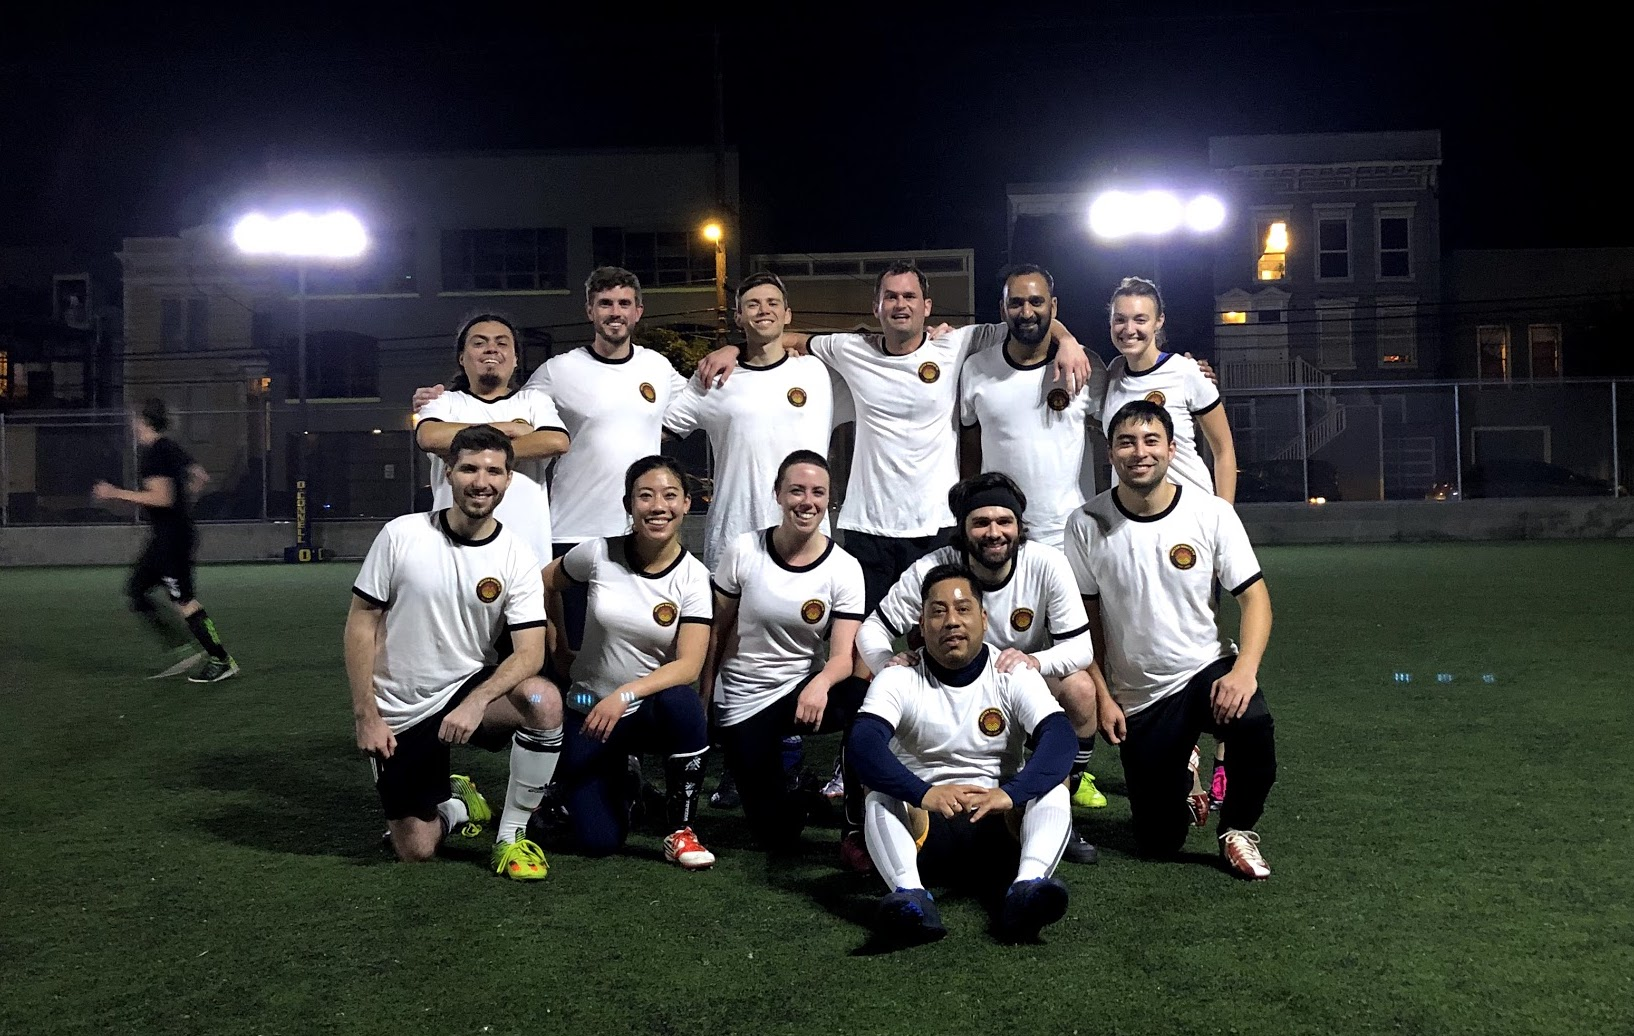 Molten Mouth soccer team photo